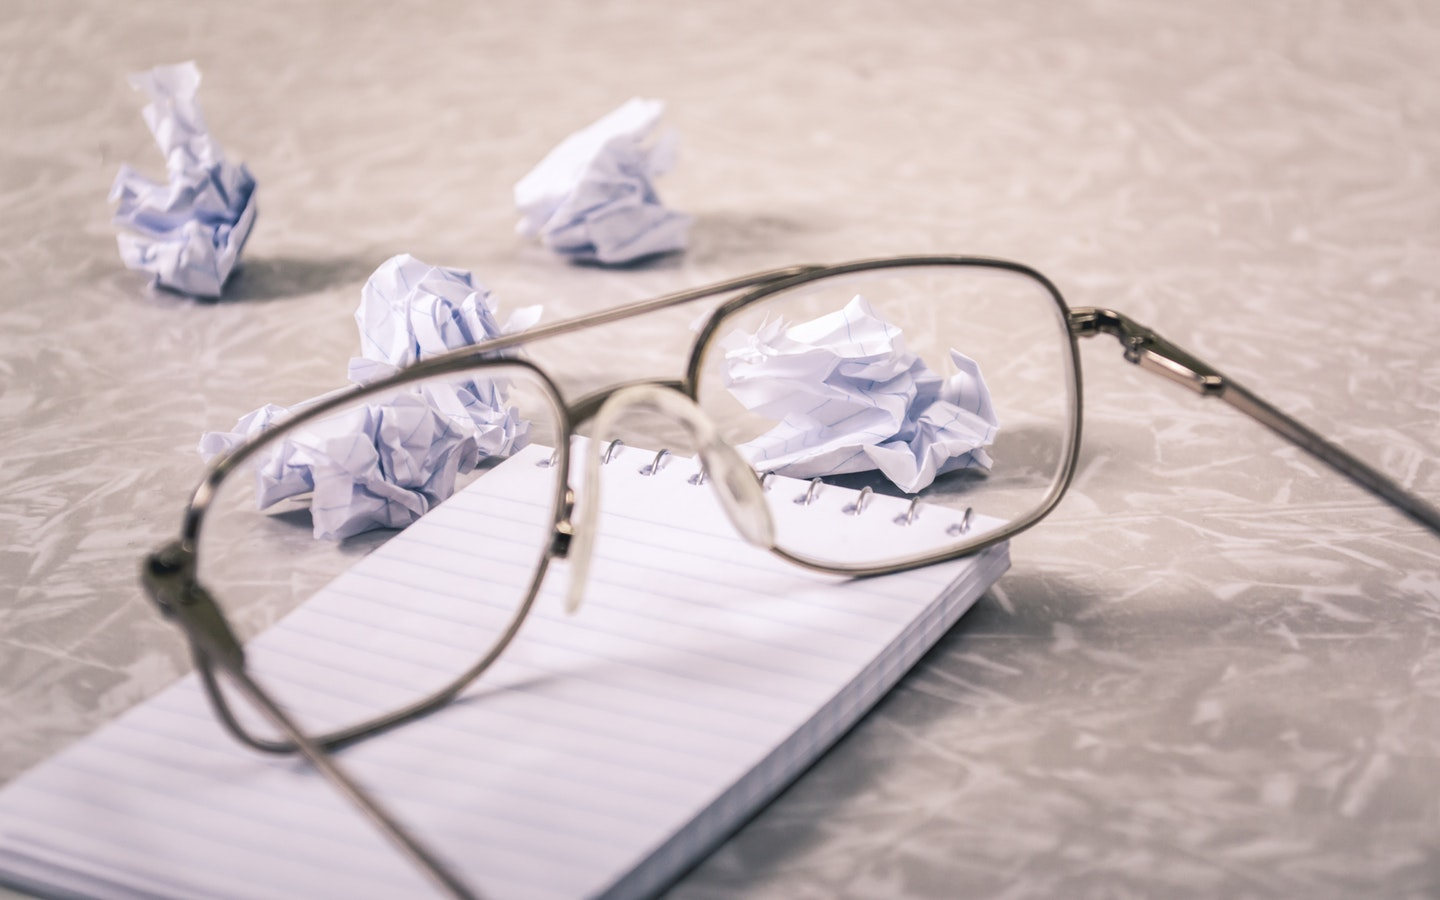 crumpled paper and glasses